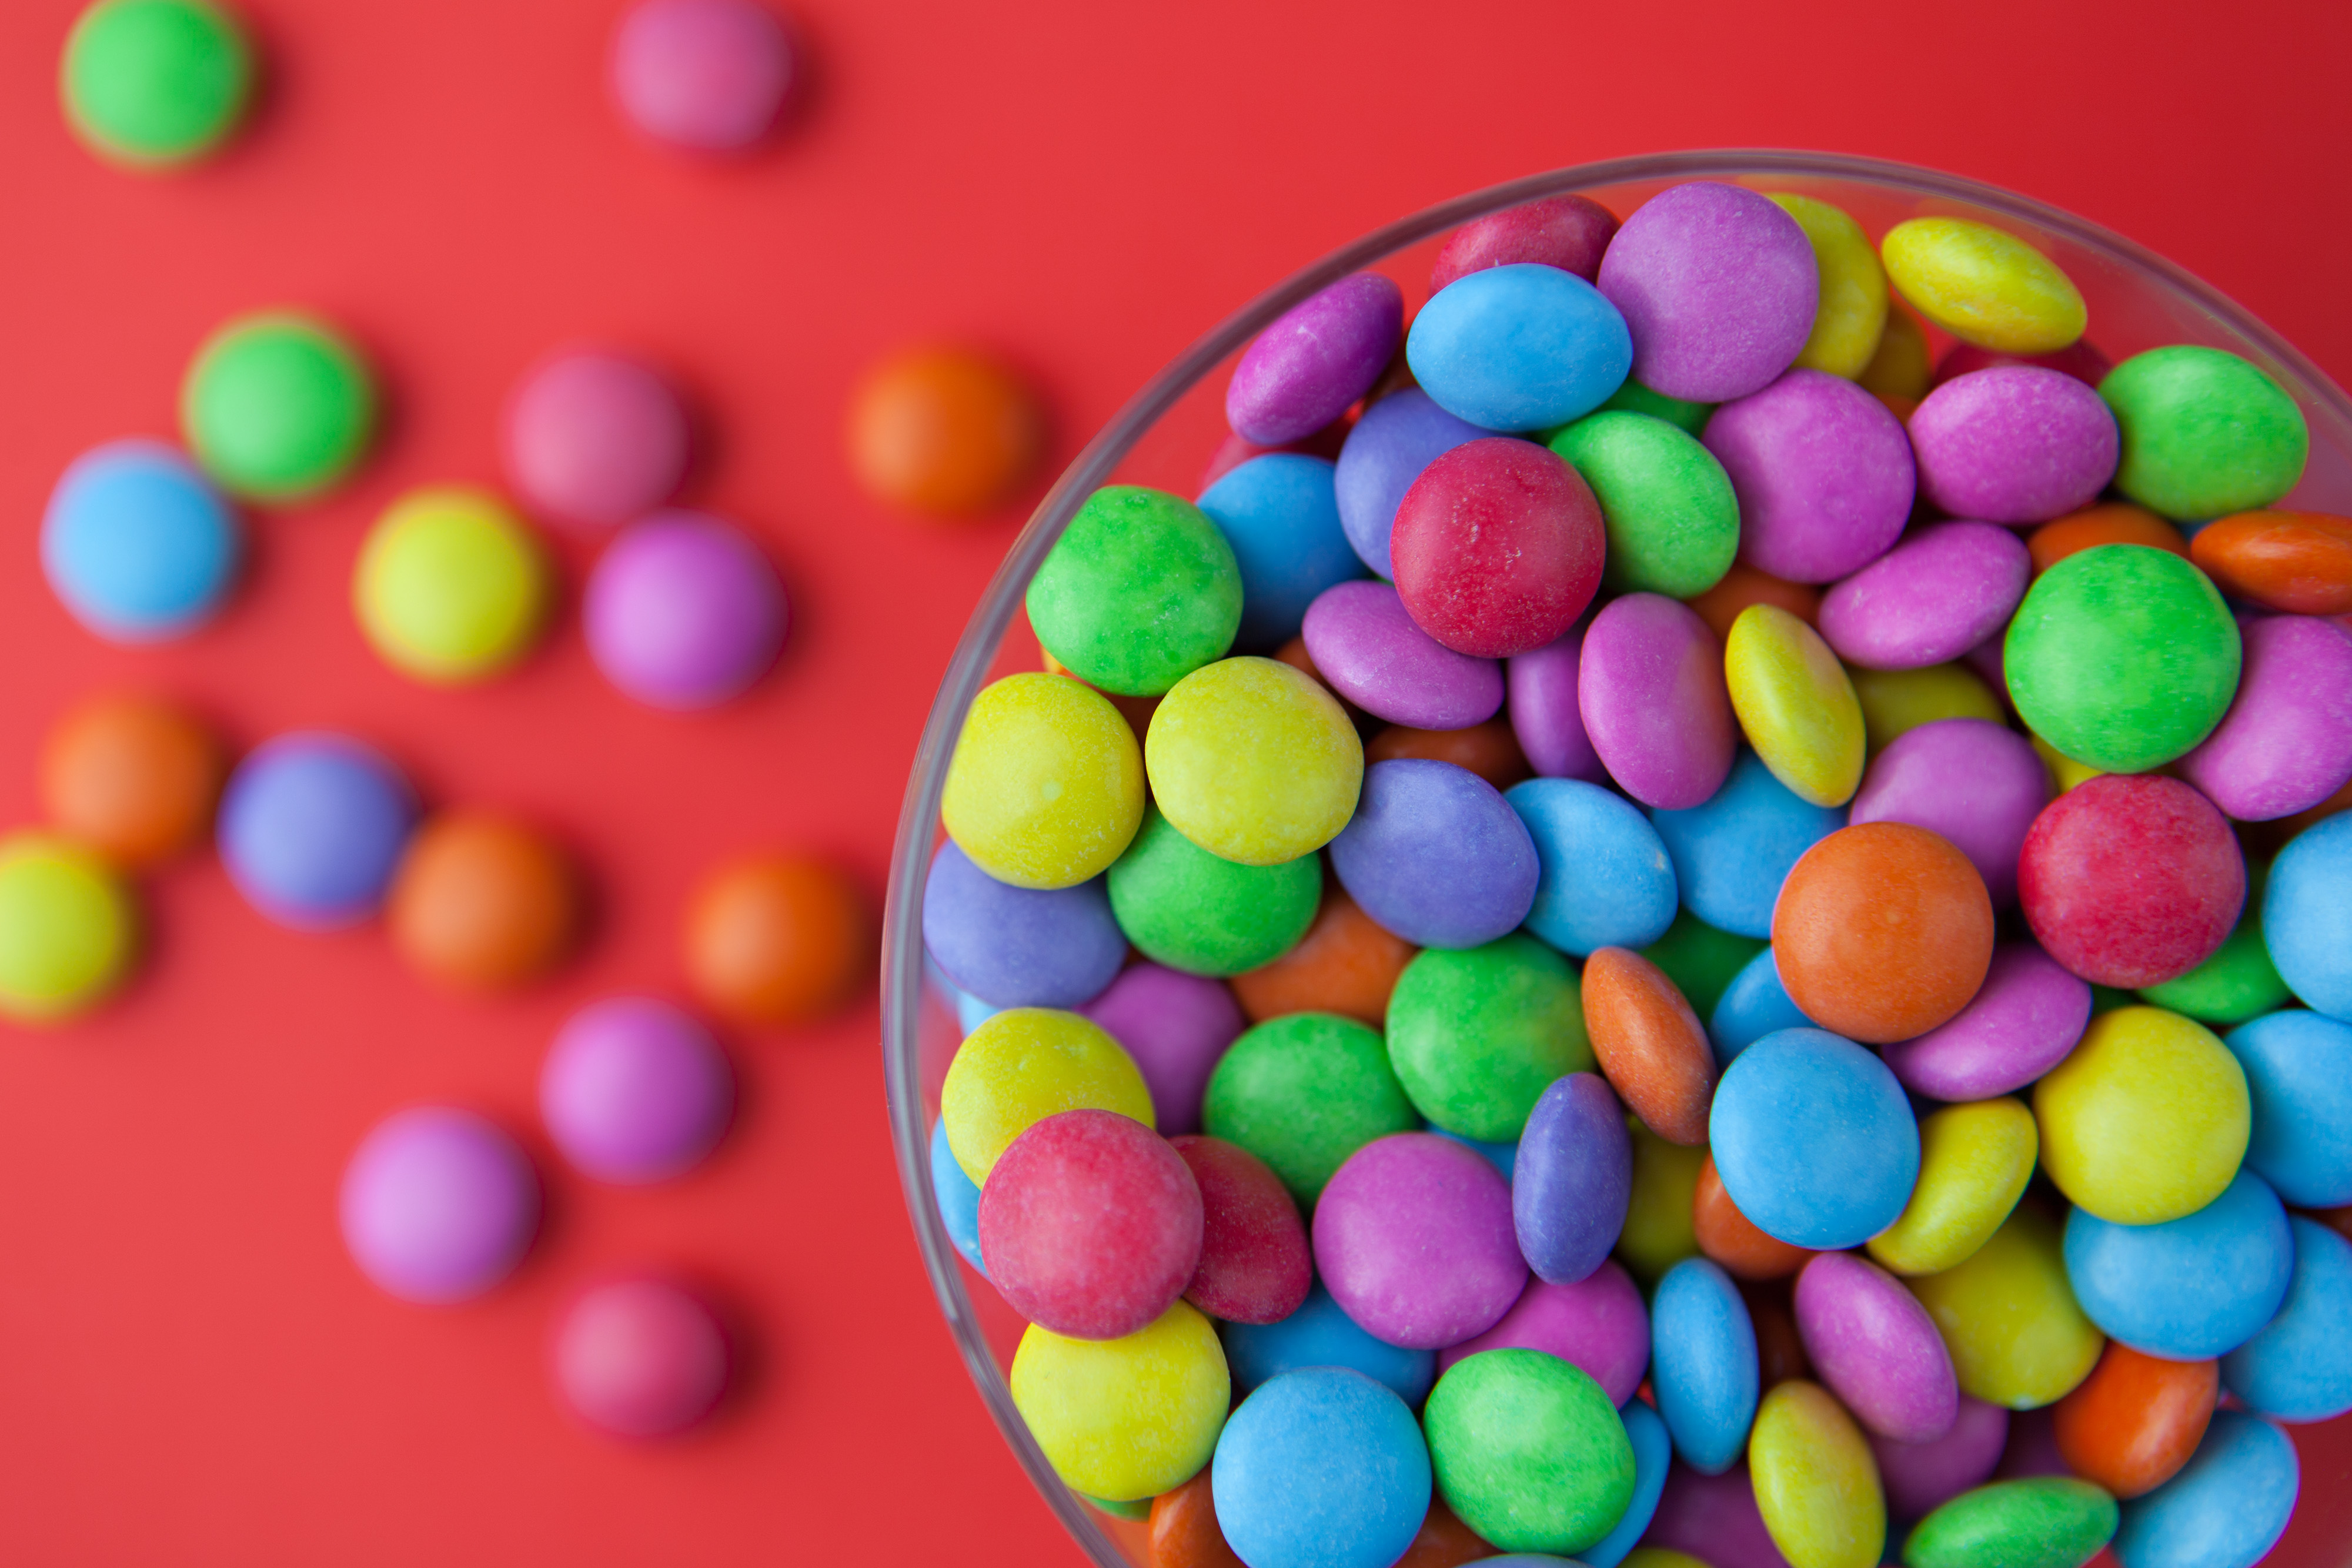 candy colorful bowl hd creative 4k wallpapers images